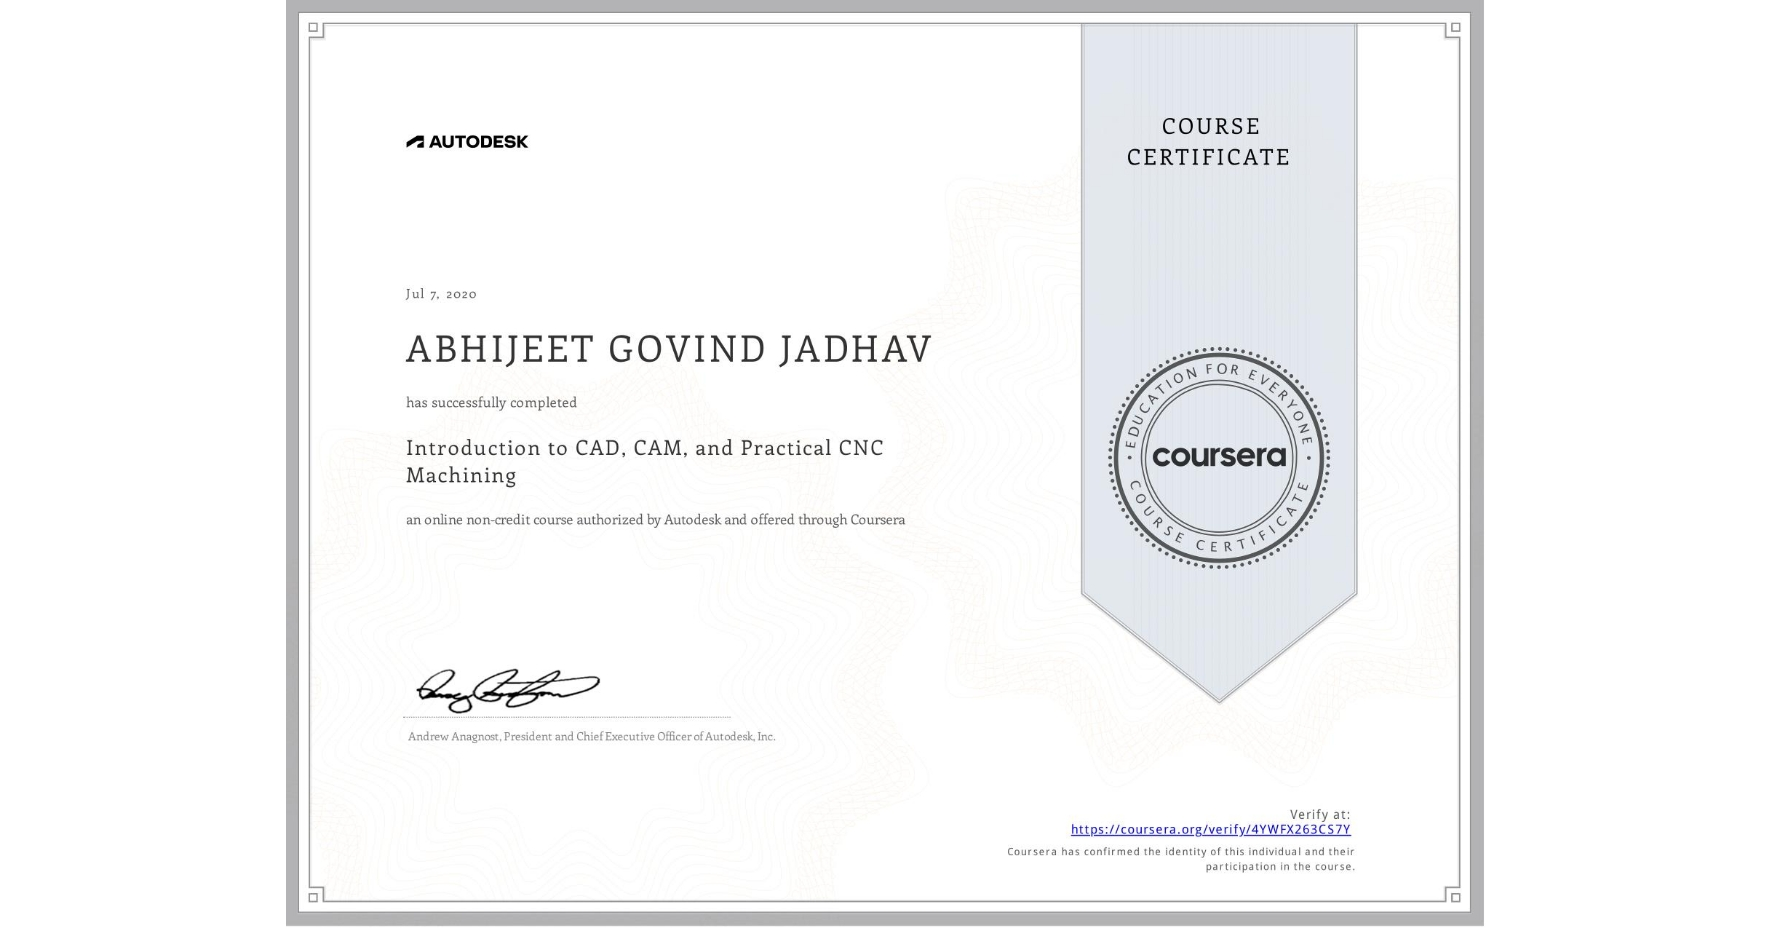 View certificate for ABHIJEET GOVIND JADHAV, Introduction to CAD, CAM, and Practical CNC Machining, an online non-credit course authorized by Autodesk and offered through Coursera